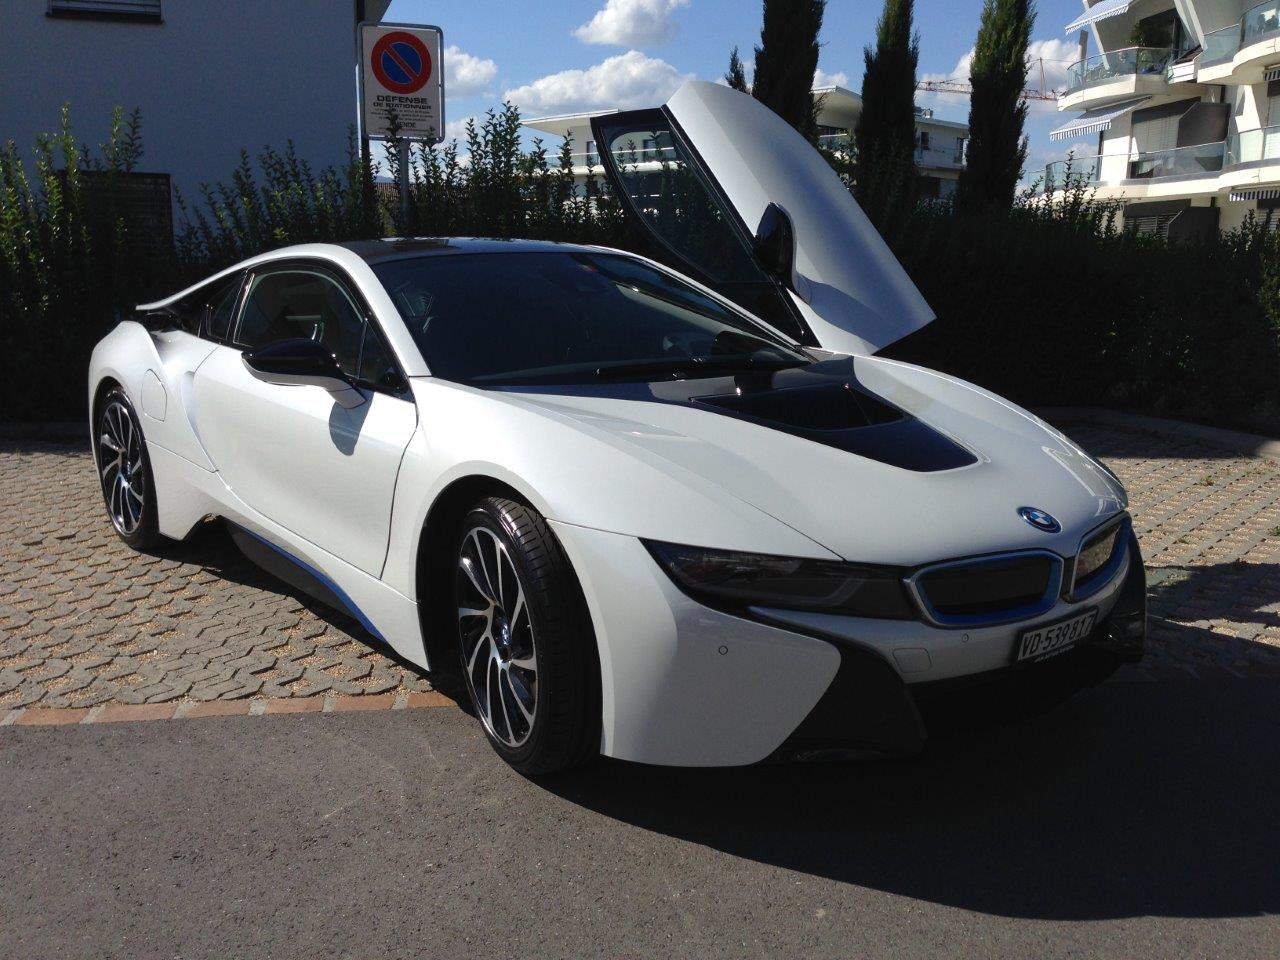 Should I Get A Bmw For My First Car